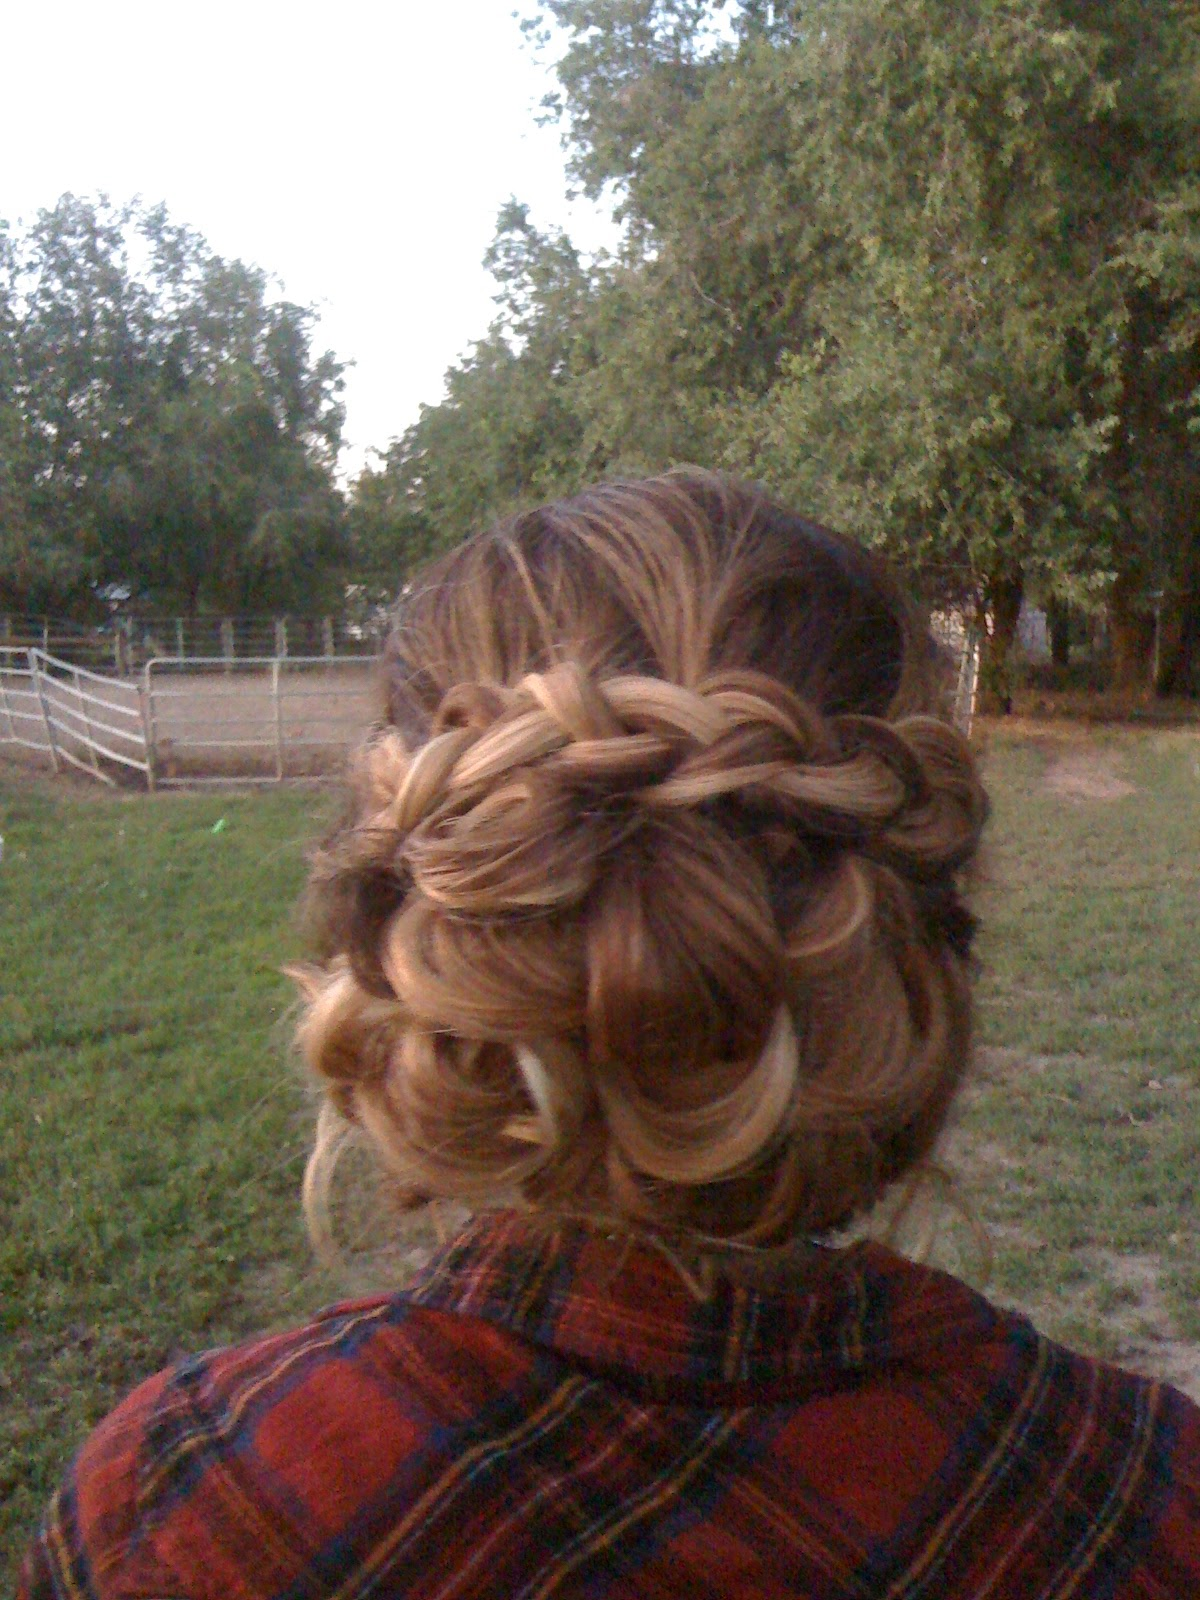 spanish wave weave hairstyles : Hair and Make-up by Steph: Behind the Chair